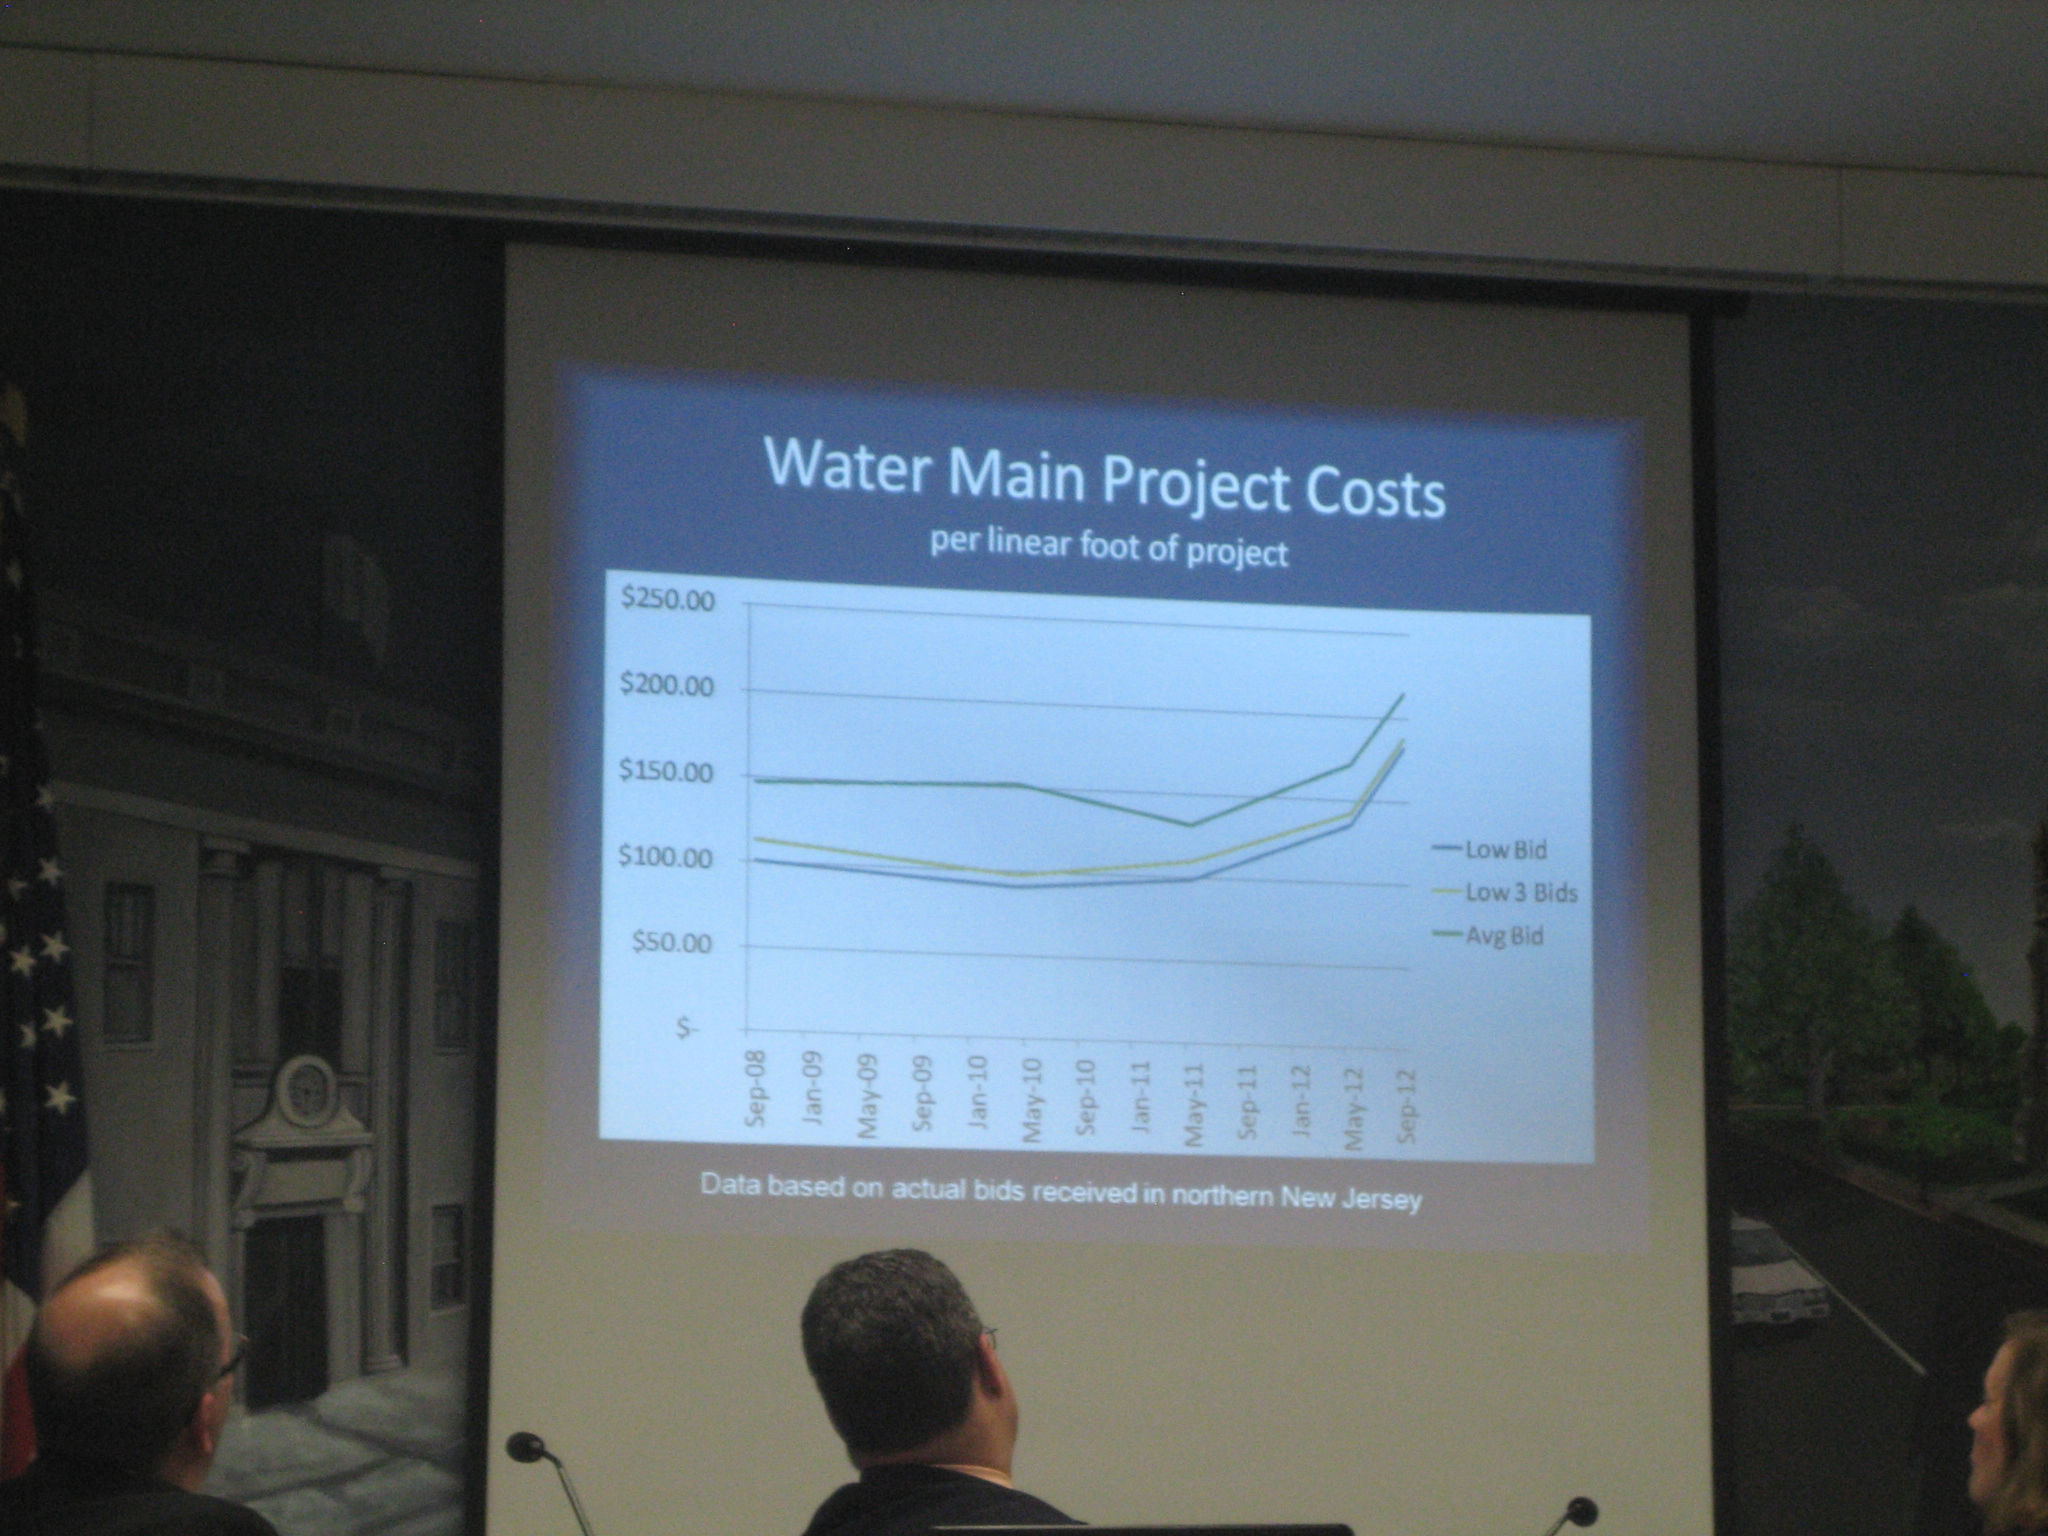 3e2a03e8ef095cef81db_Water_main_project_cost_diagram__.jpg